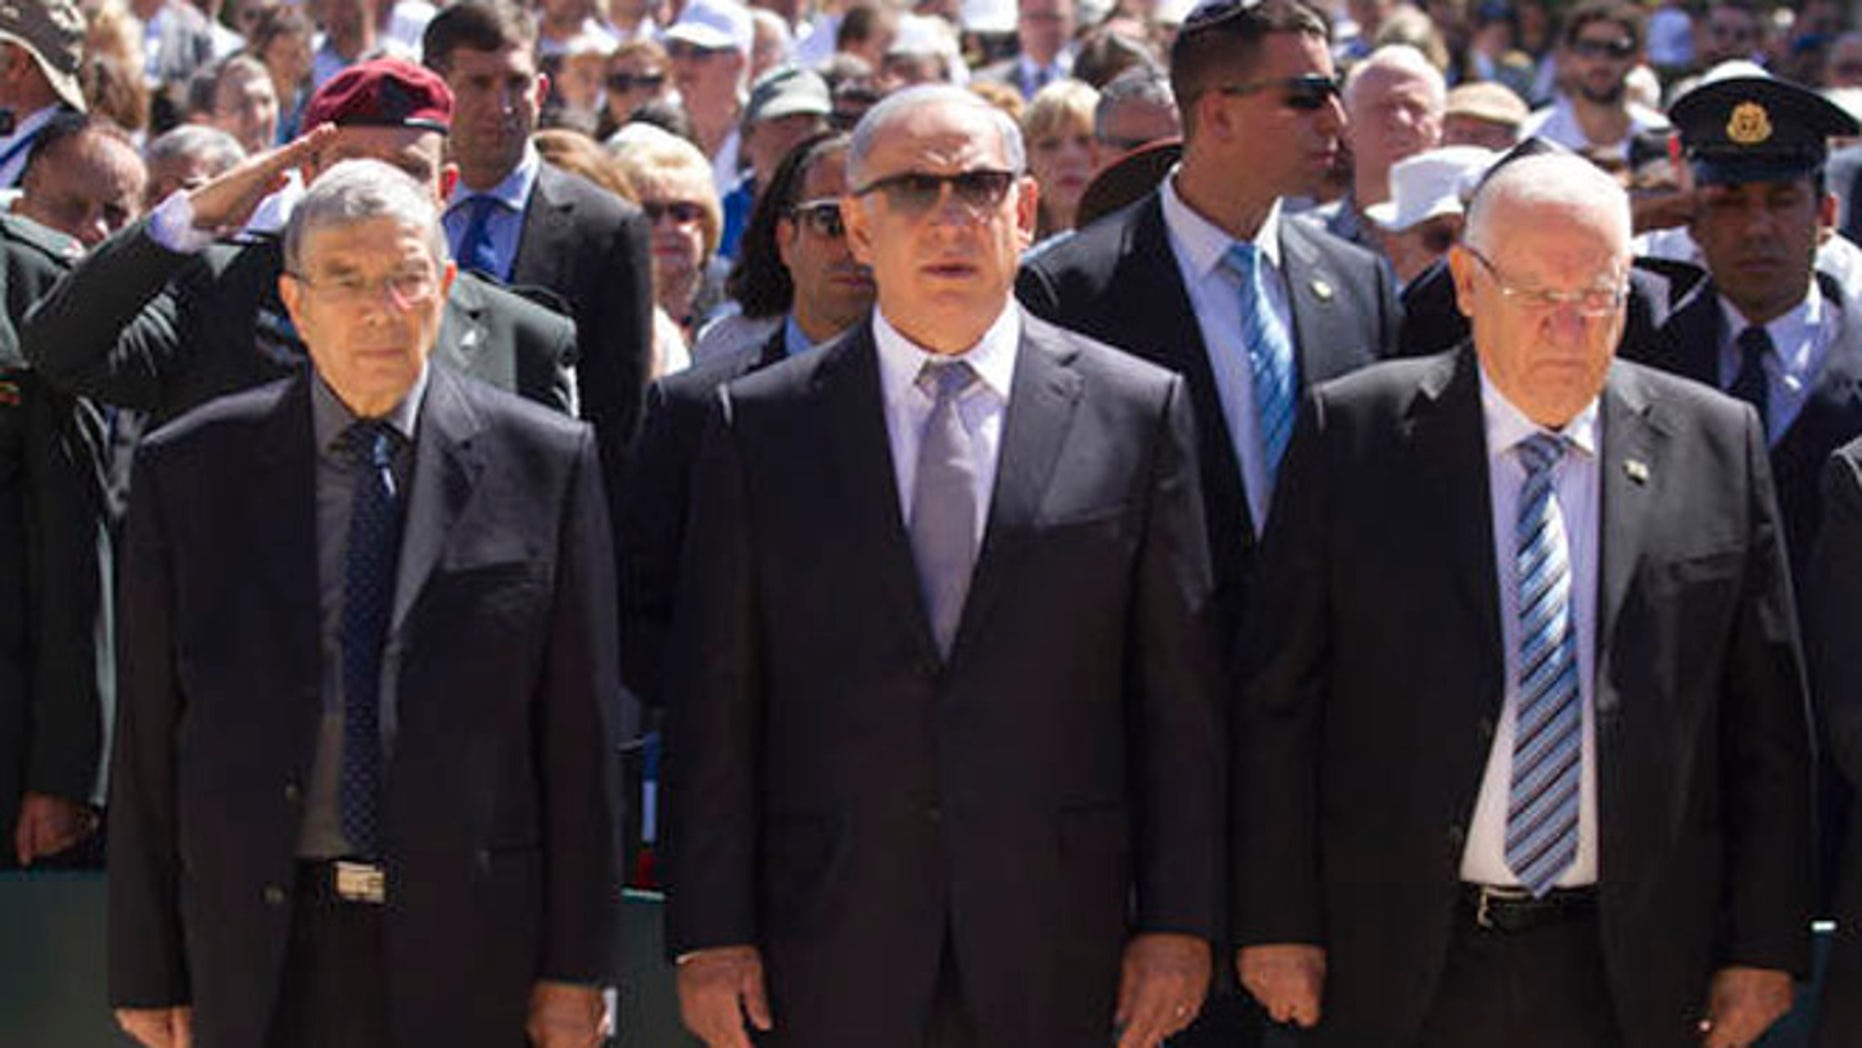 Israeli Prime Minister Benjamin Netanyahu, center, Israeli president Reuven Rivlin, right, and Chairman of the Yad Vashem Avner Shalev stand during a sirens as part of a ceremony marking the annual Holocaust Remembrance Day at the Yad Vashem Holocaust memorial, in Jerusalem, Thursday, May 5, 2016. (AP Photo/Dan Balilty)